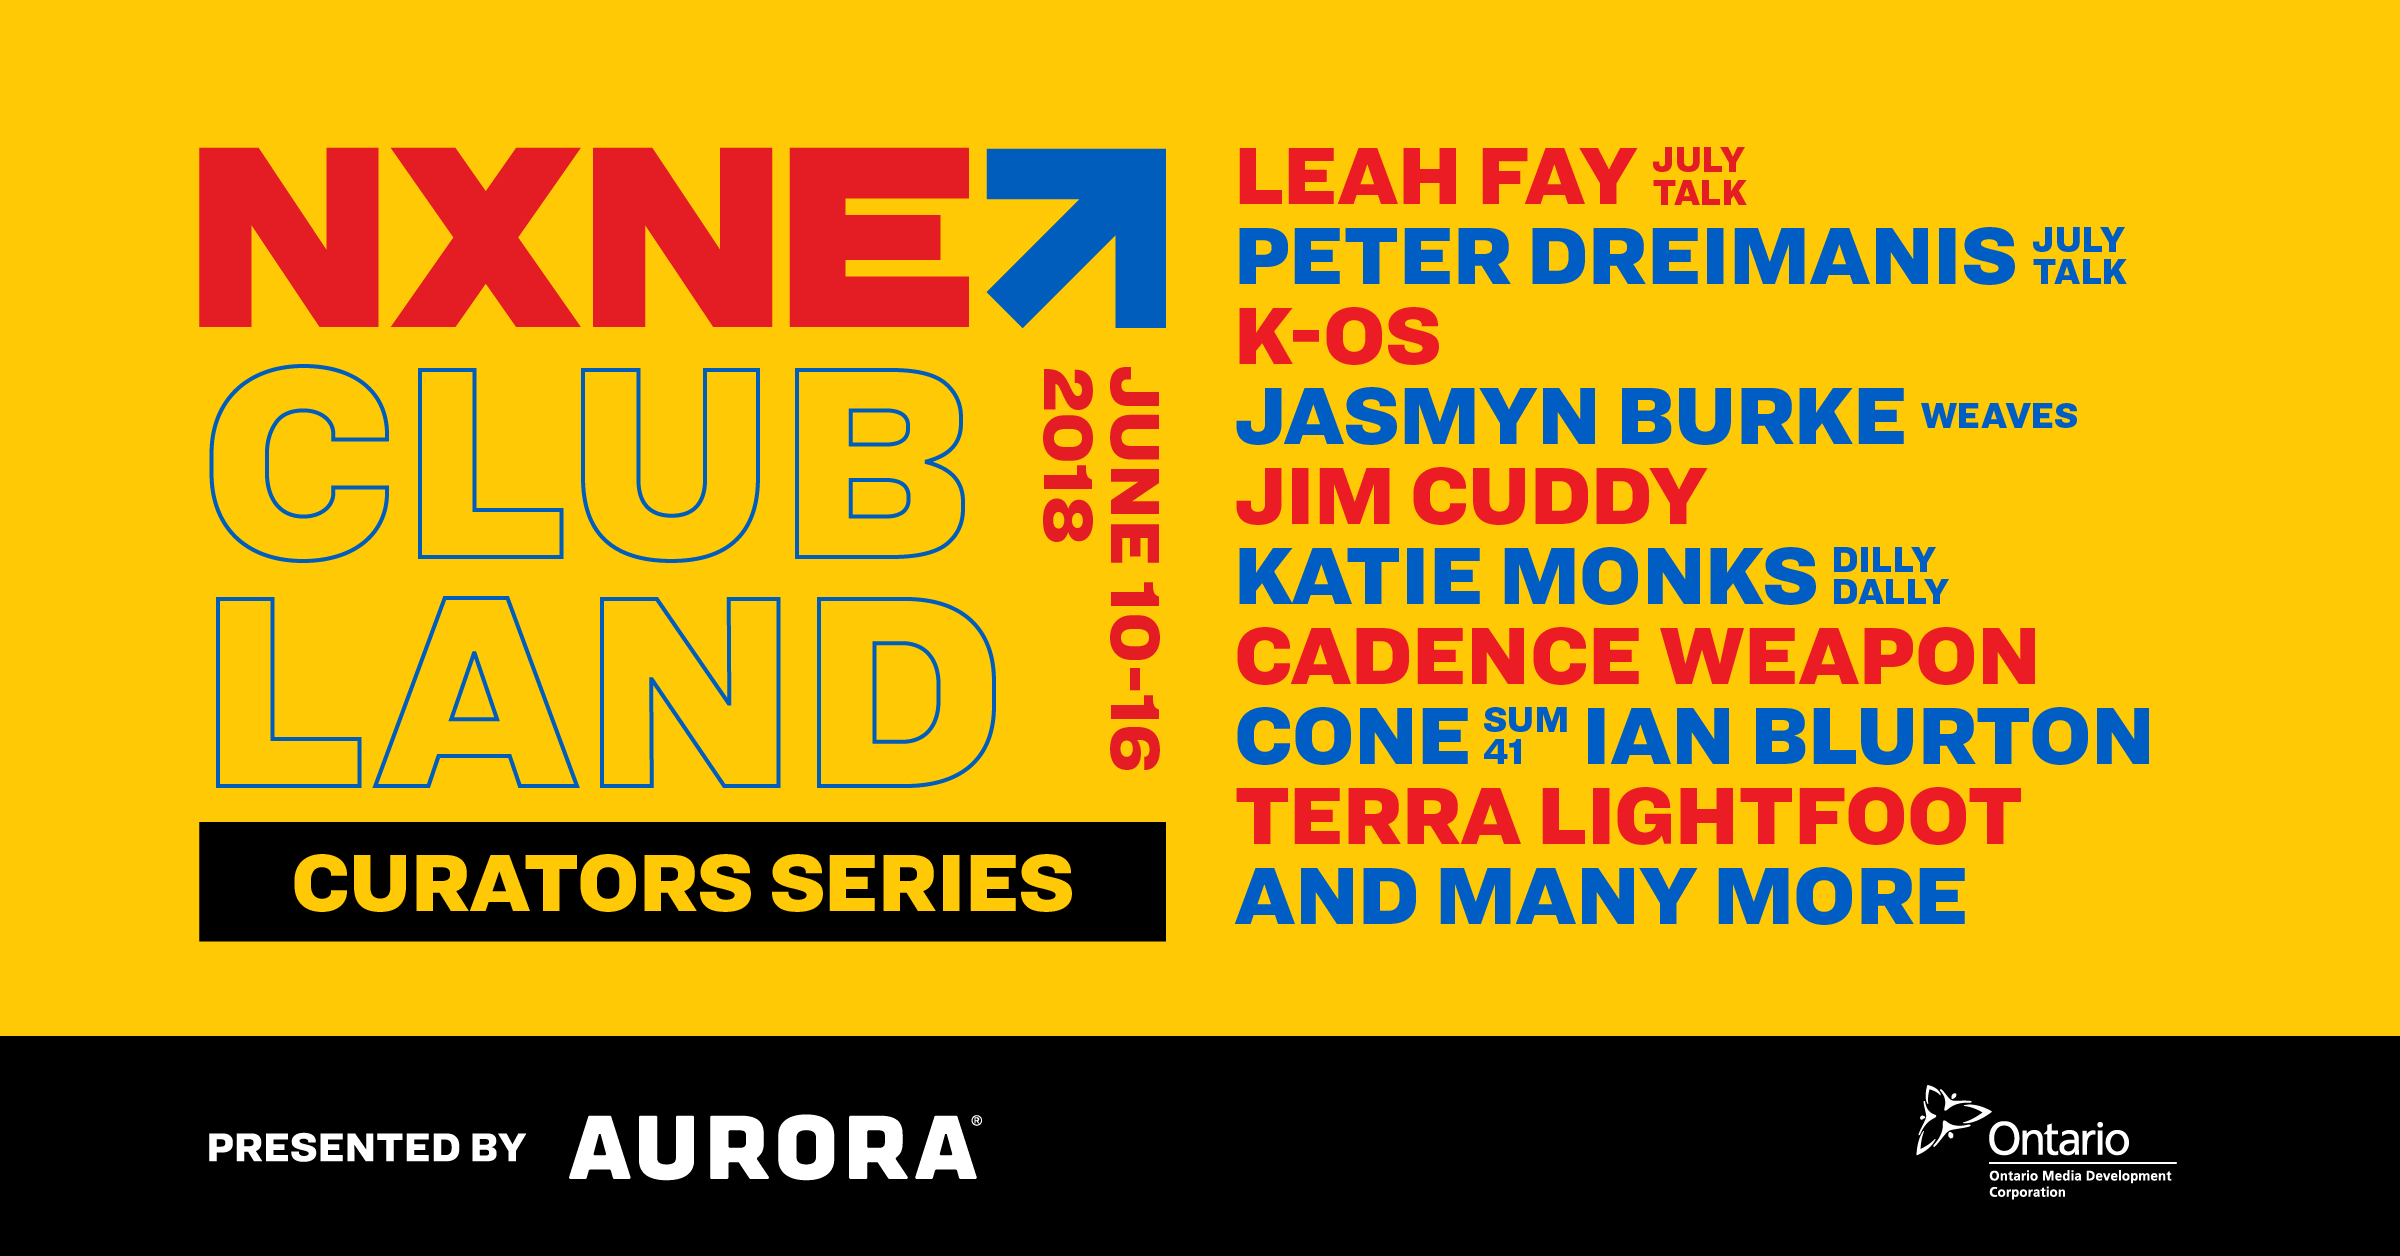 Tickets for NXNE 2018 Club Land: Curator Series in Toronto from ShowClix